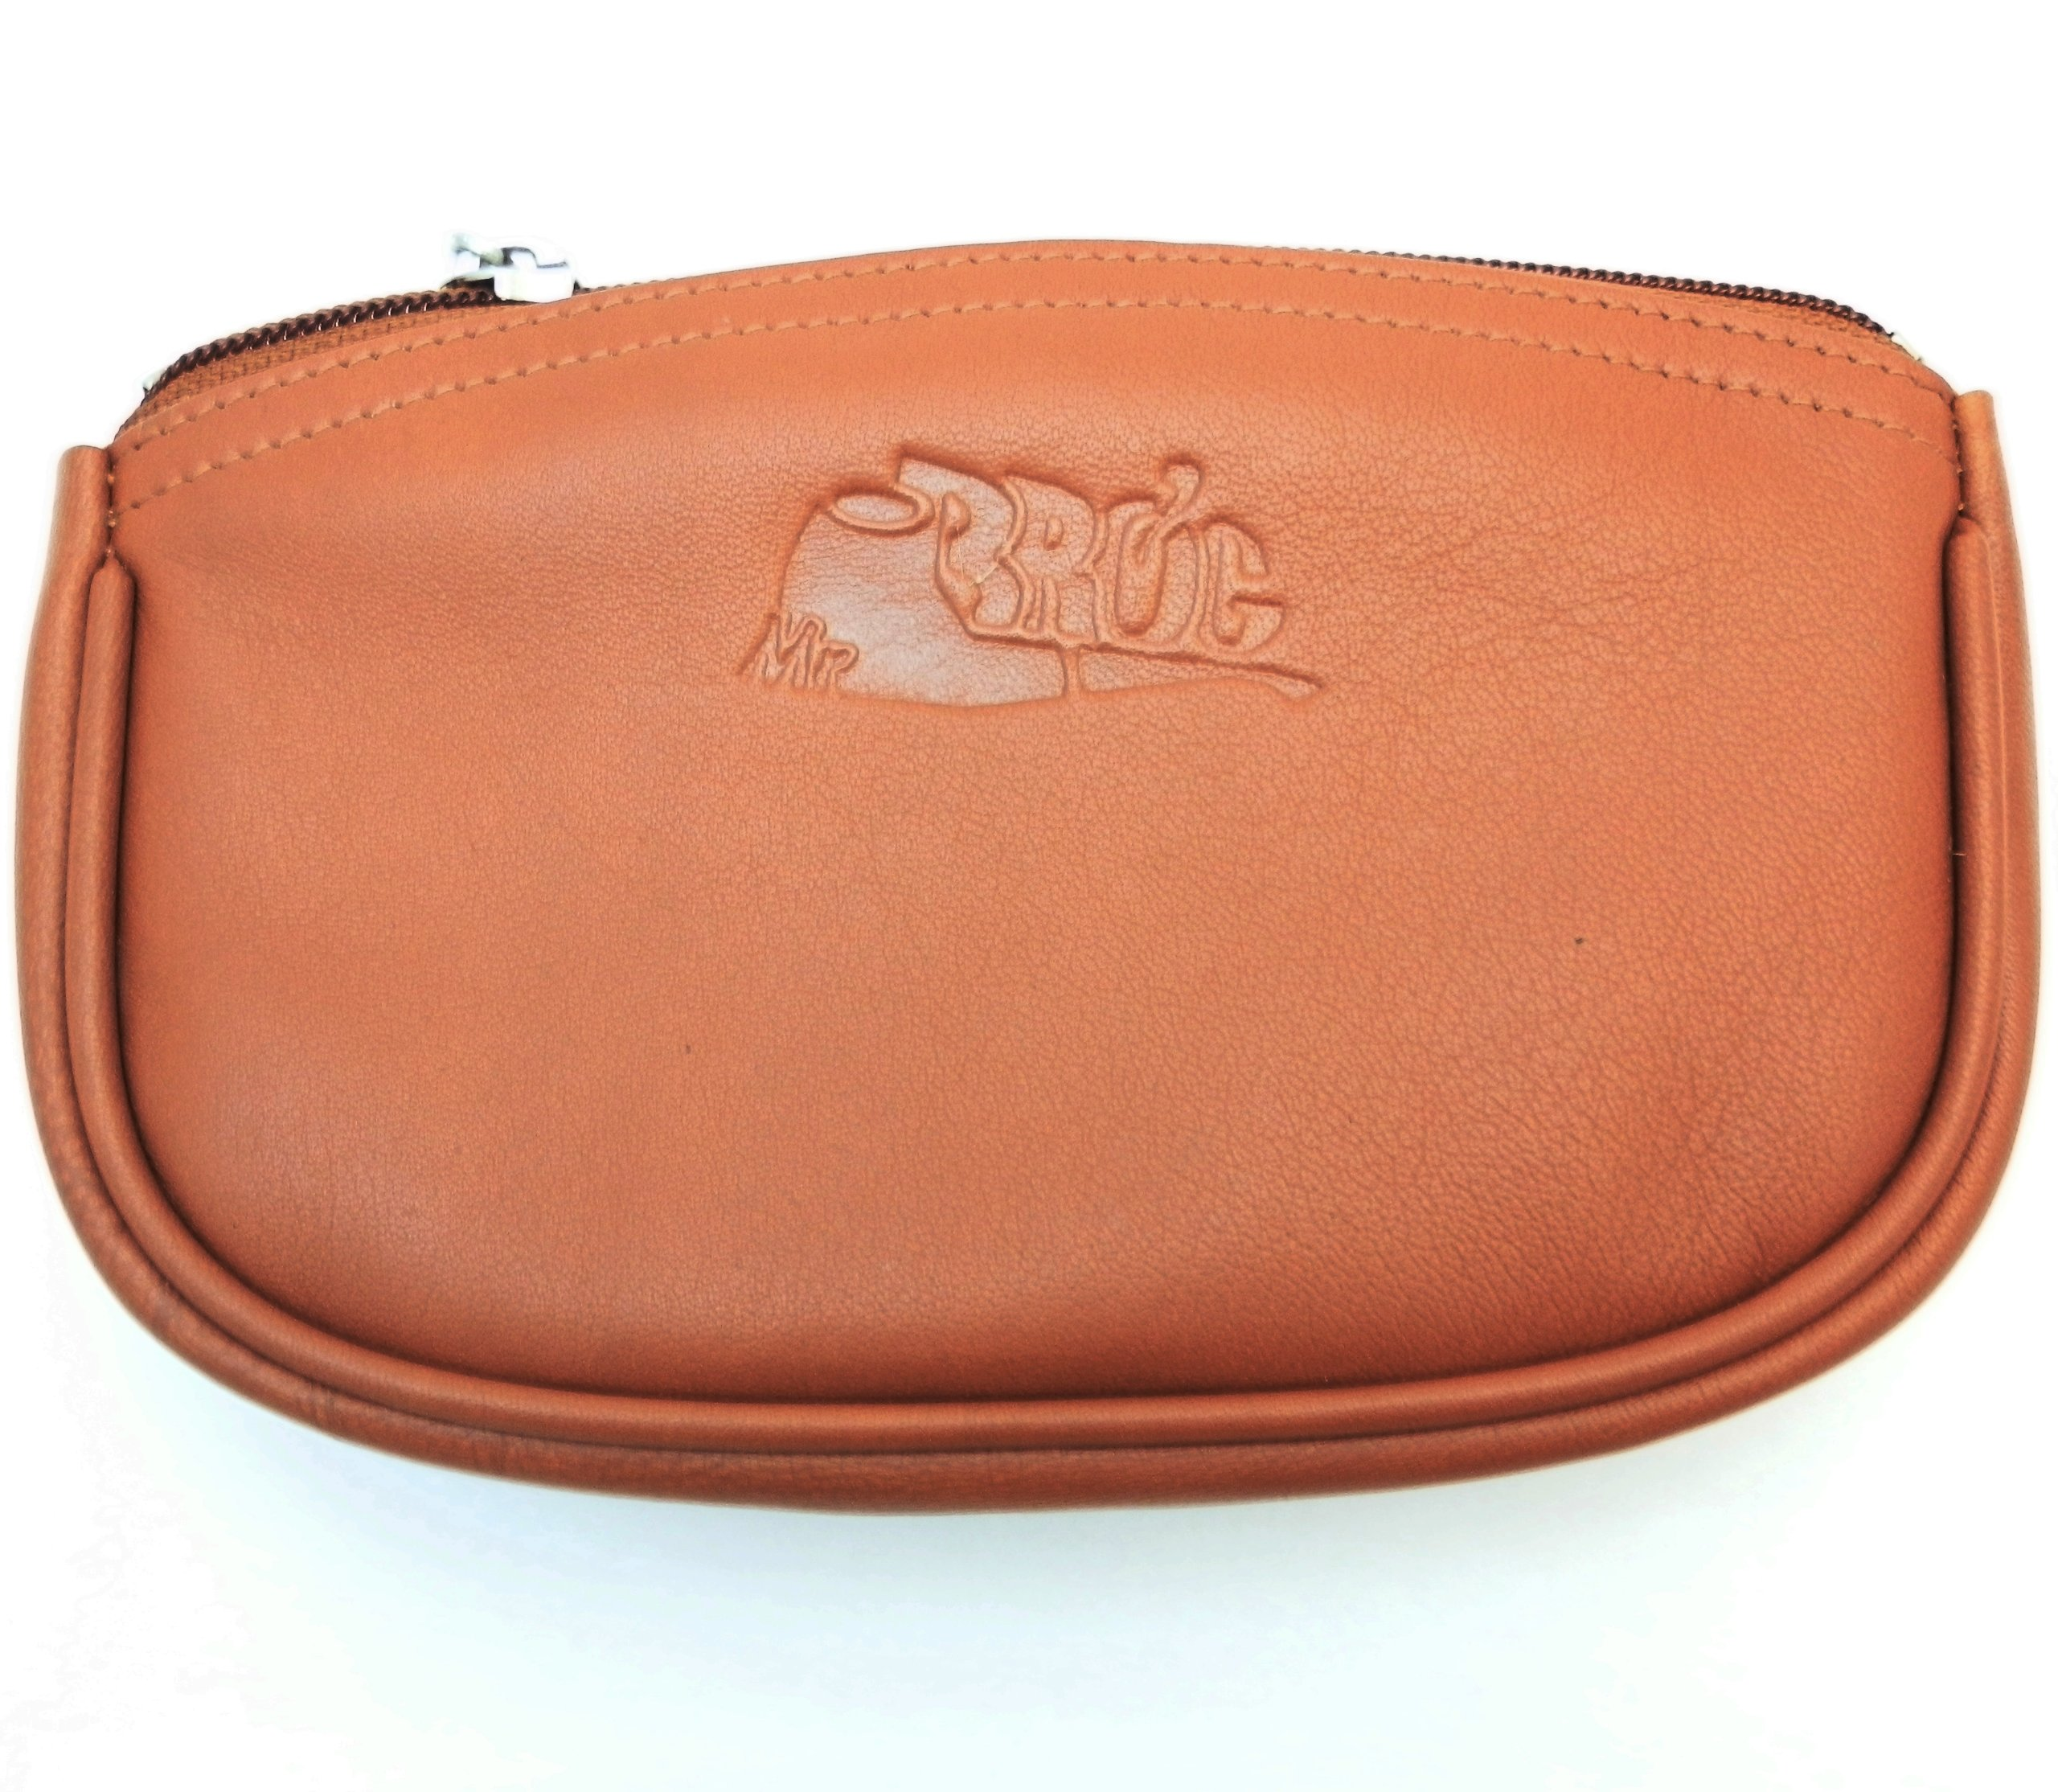 Sheep Napa Leather Tobacco Pouch with Rubber Lining to Preserve Freshness